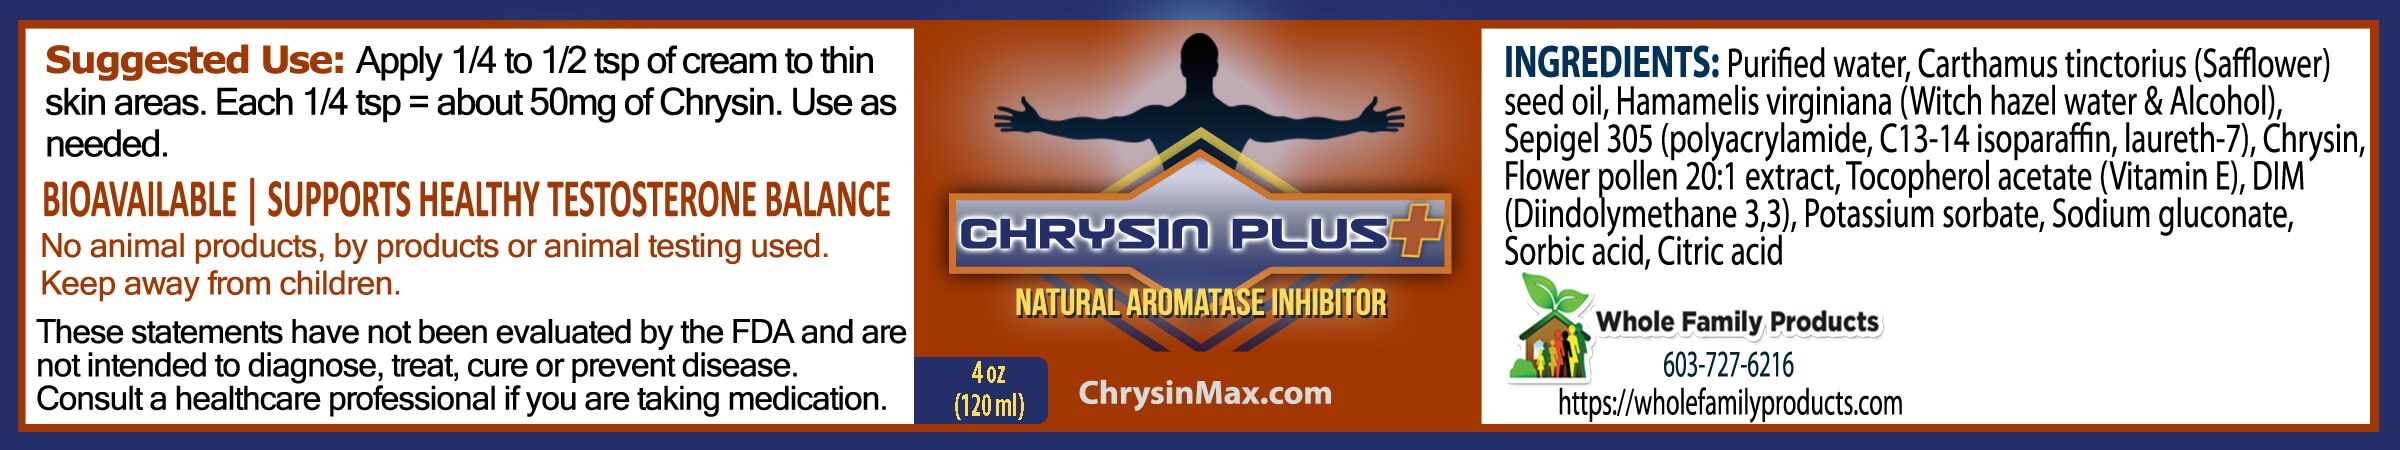 Chyrisin Plus 4oz Jar Label